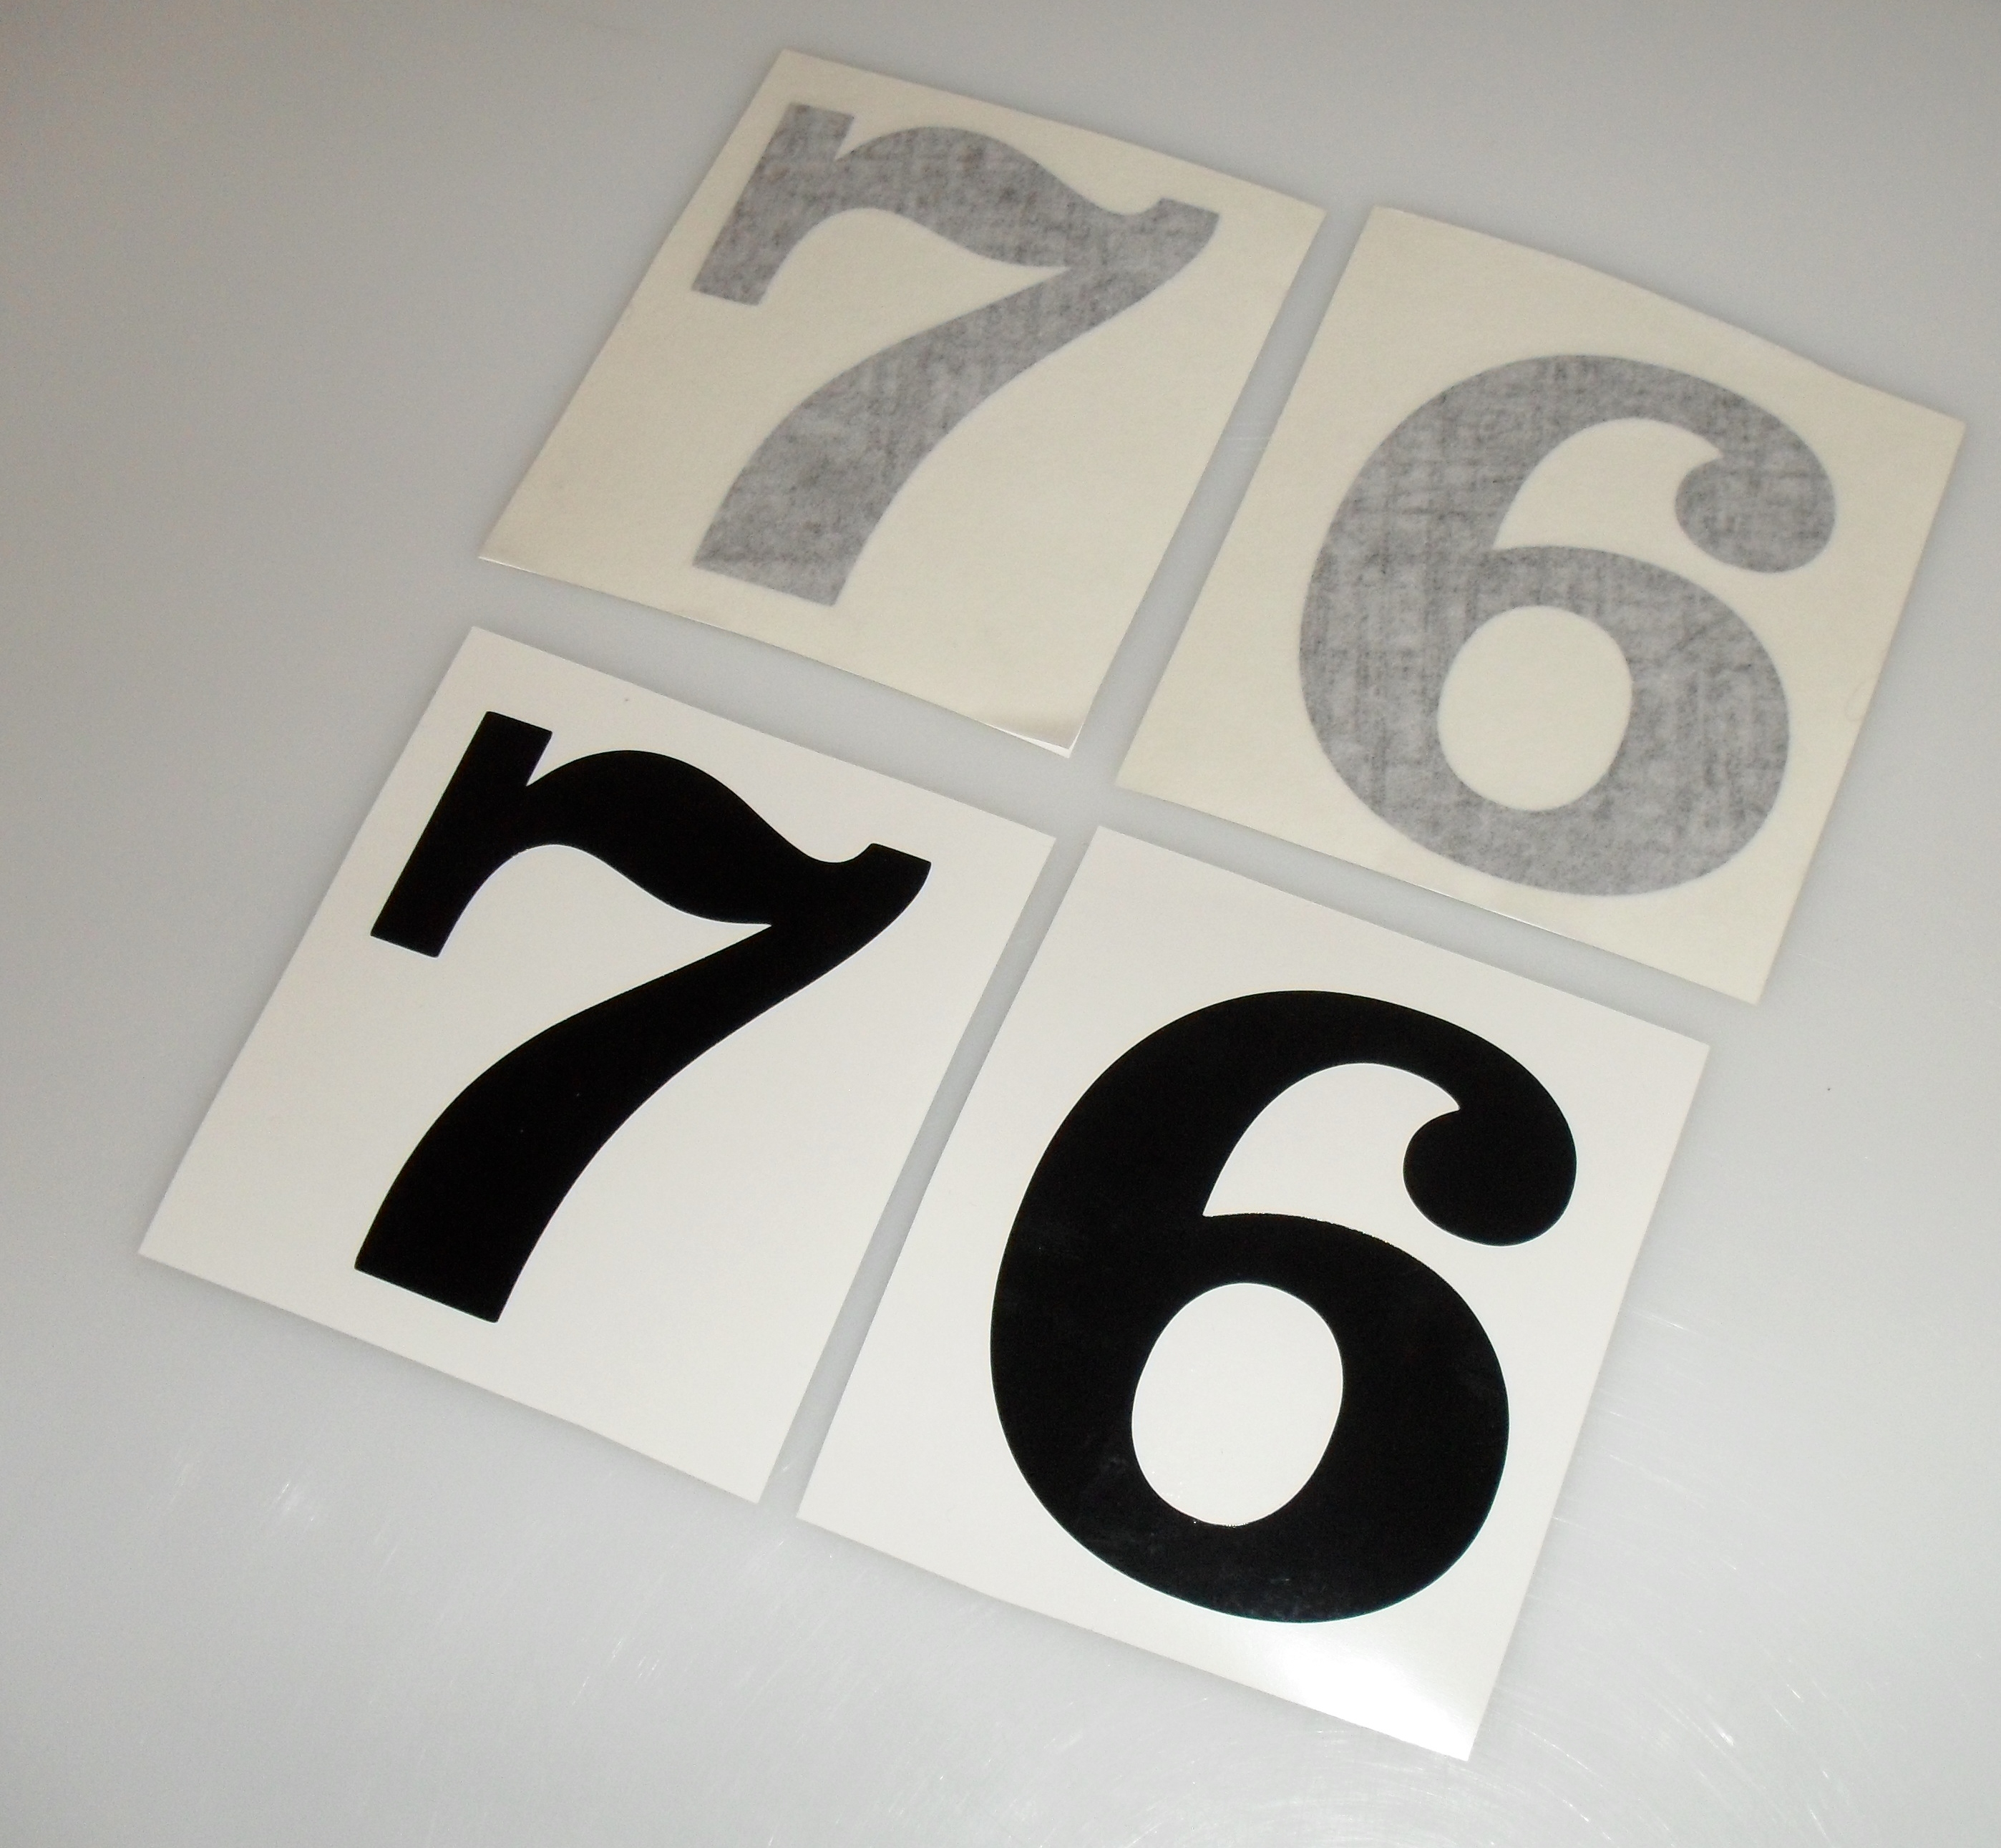 Vintage motocross number plate graphics - Vintage Style Motocross Race Number Plate Decals Mx Bmx 1970s